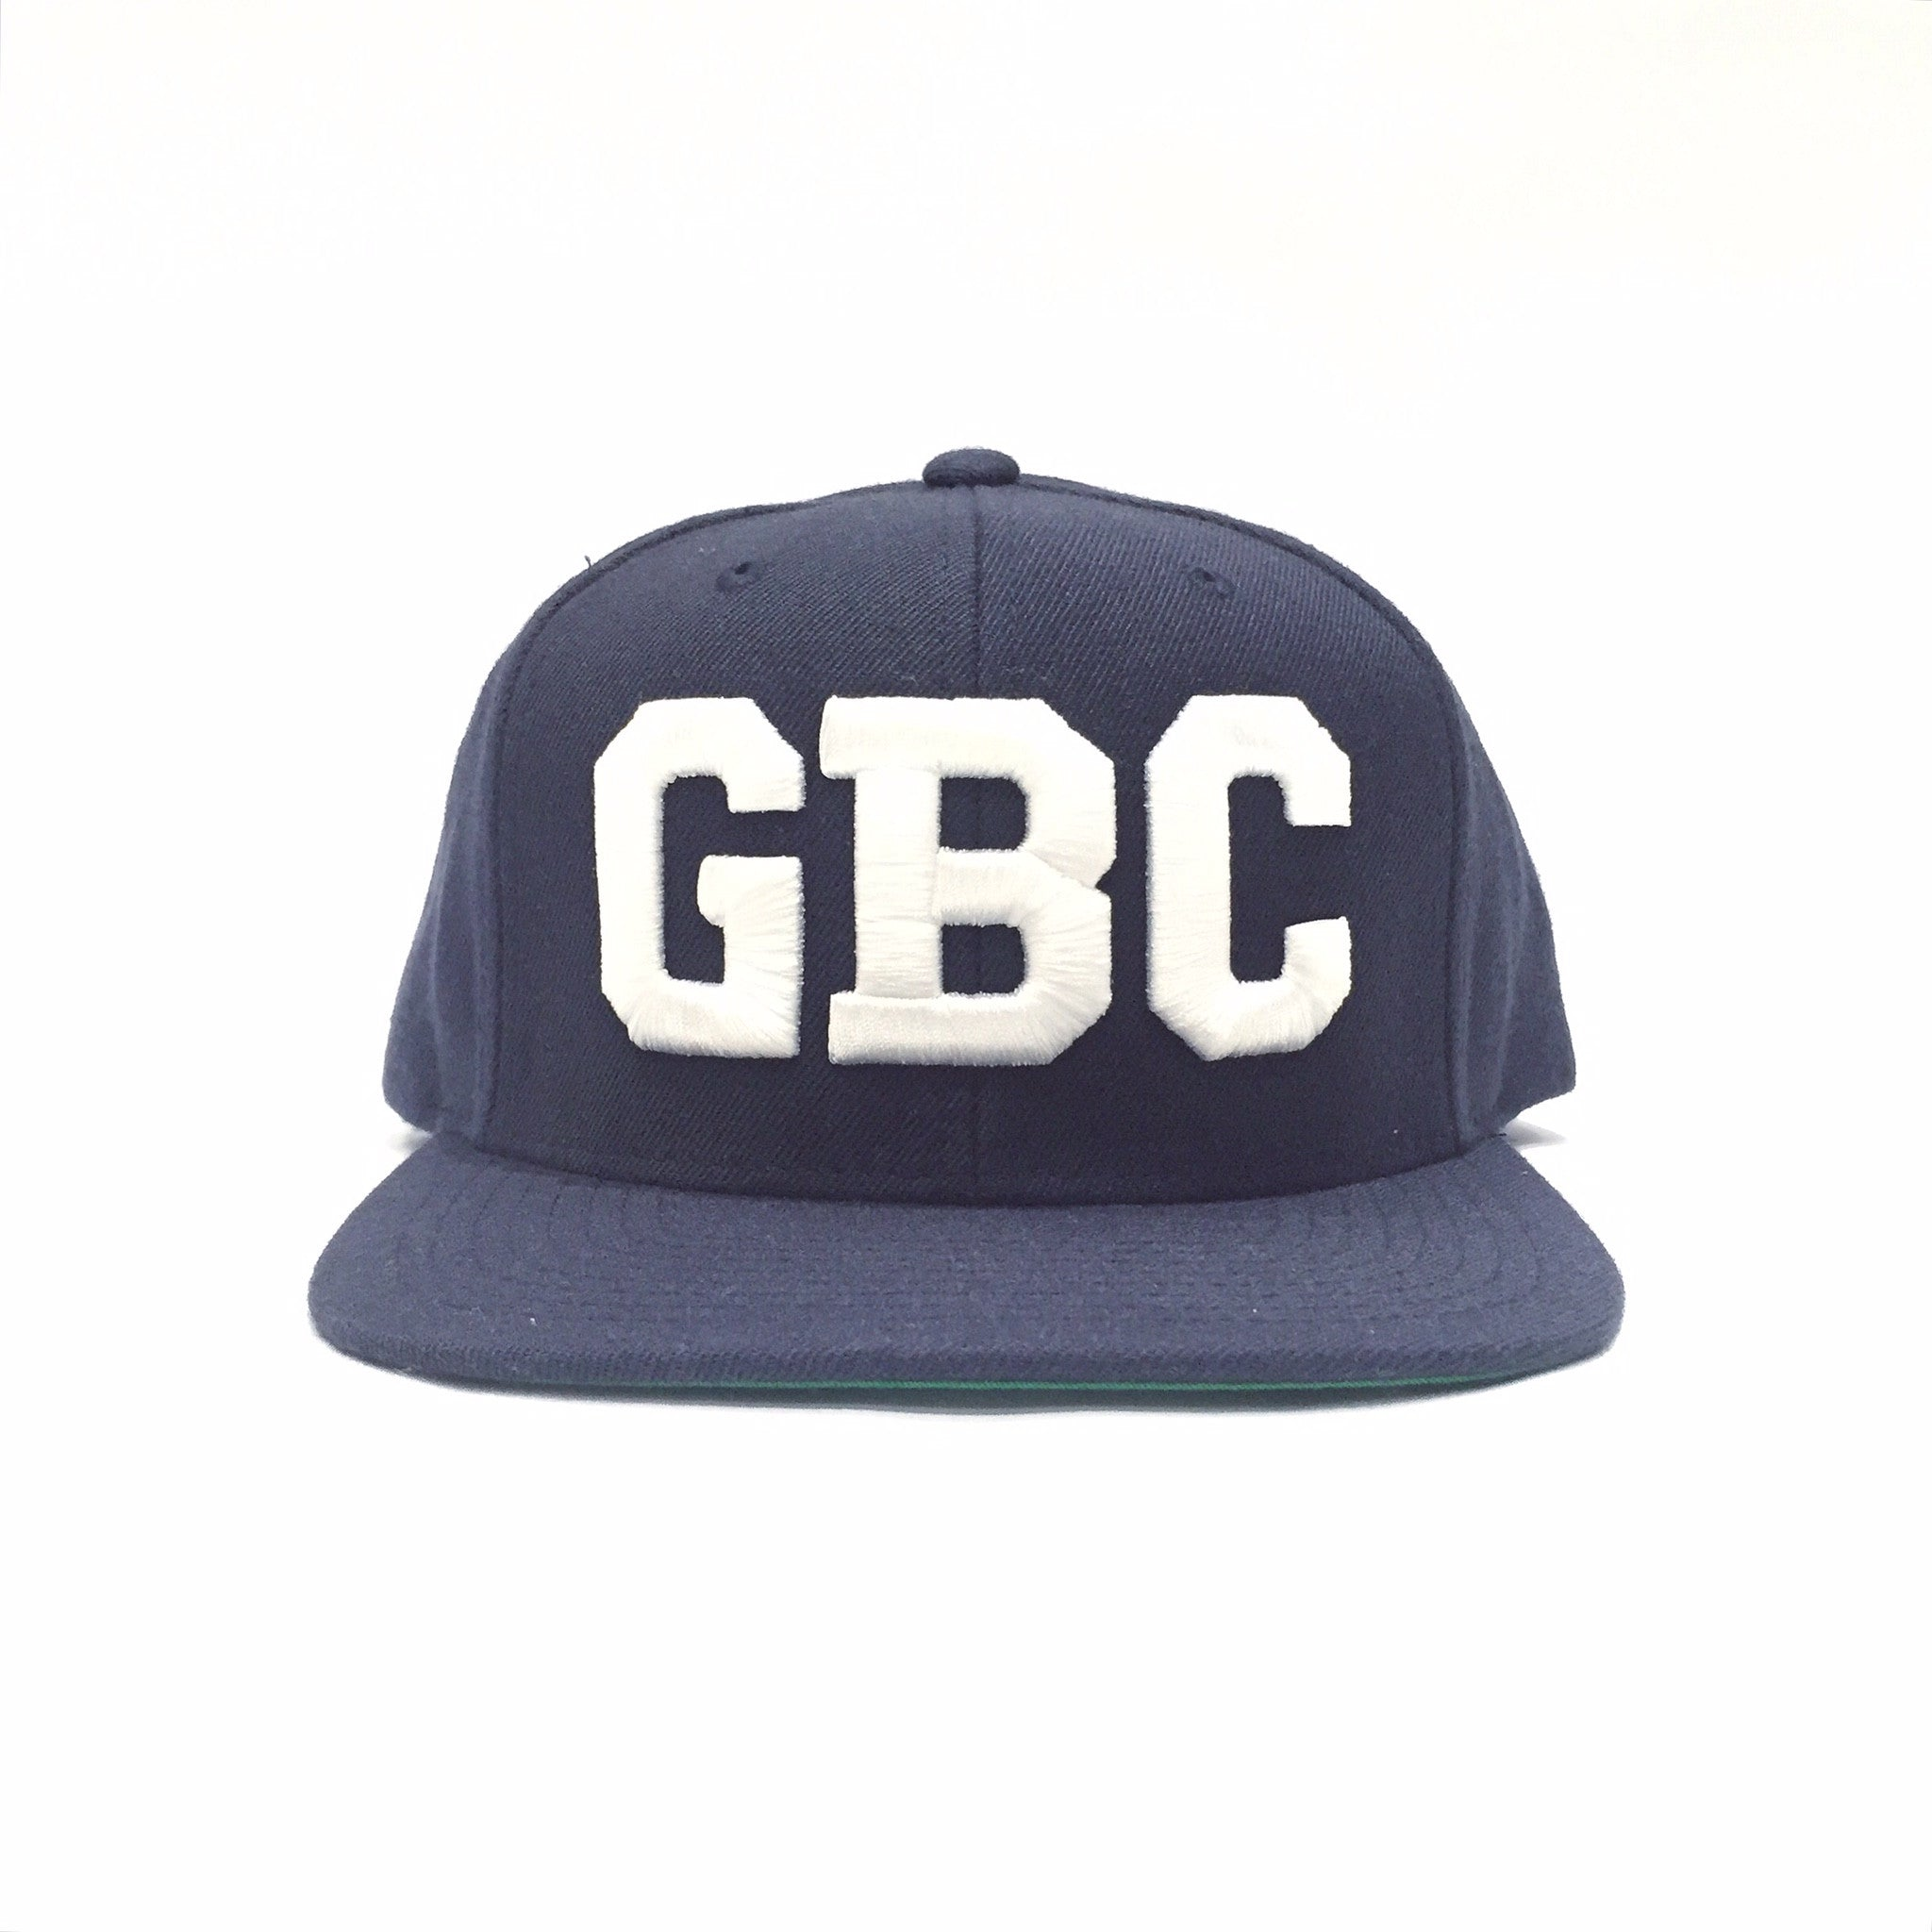 "Guy Benson Collection ""GBC"" SnapBack Hat - Navy Blue/White"